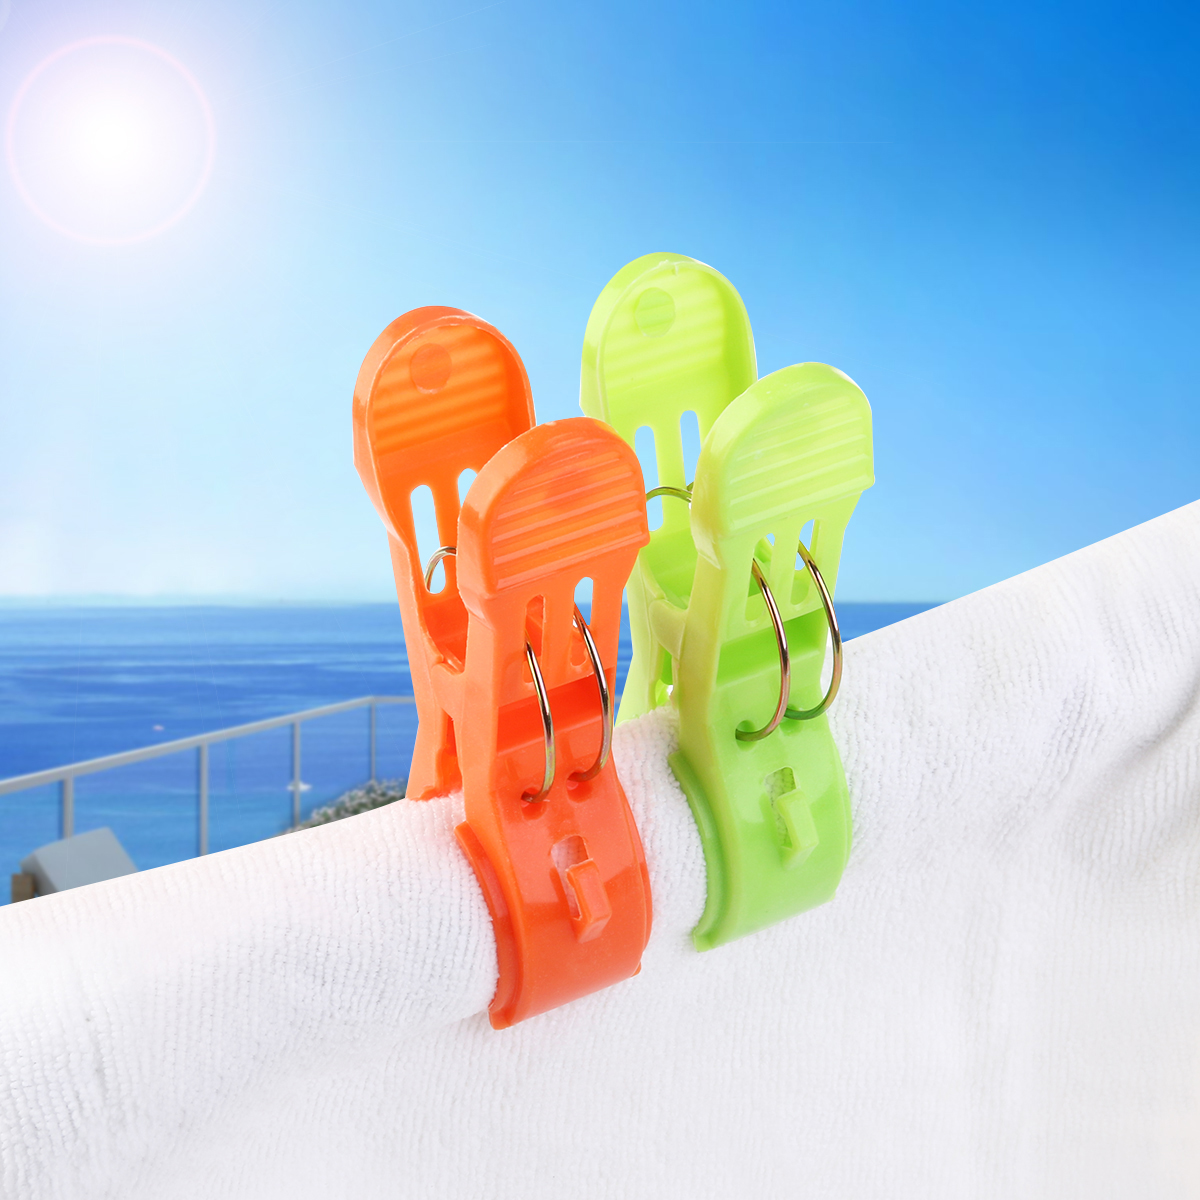 Bulk Beach Towel Clips: Online Kopen Wholesale Strandlaken Clip Uit China